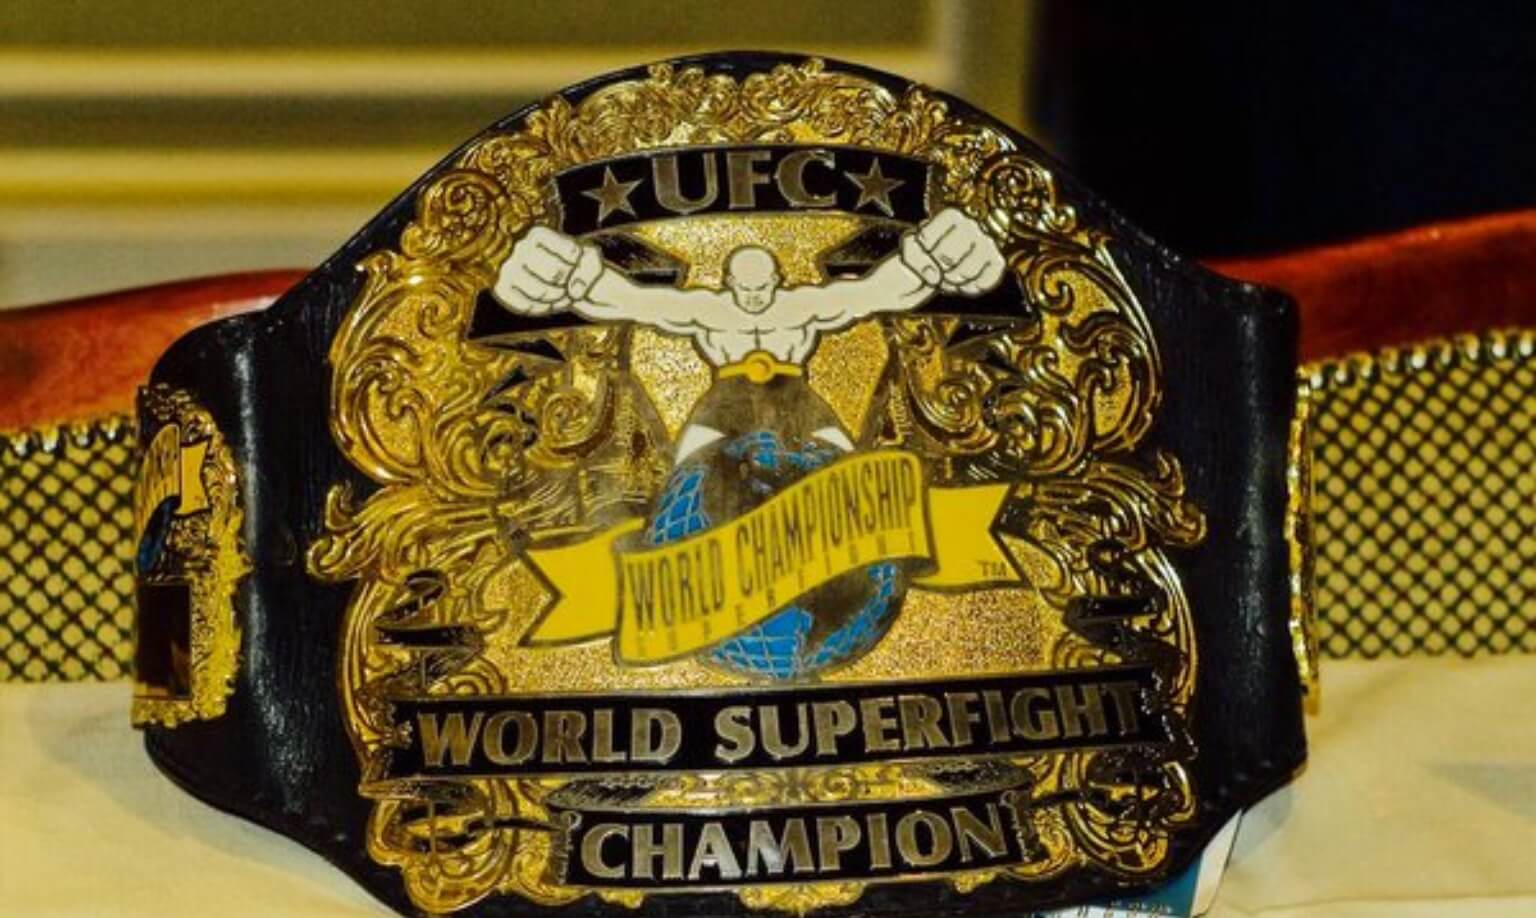 Ufc title belt super fight